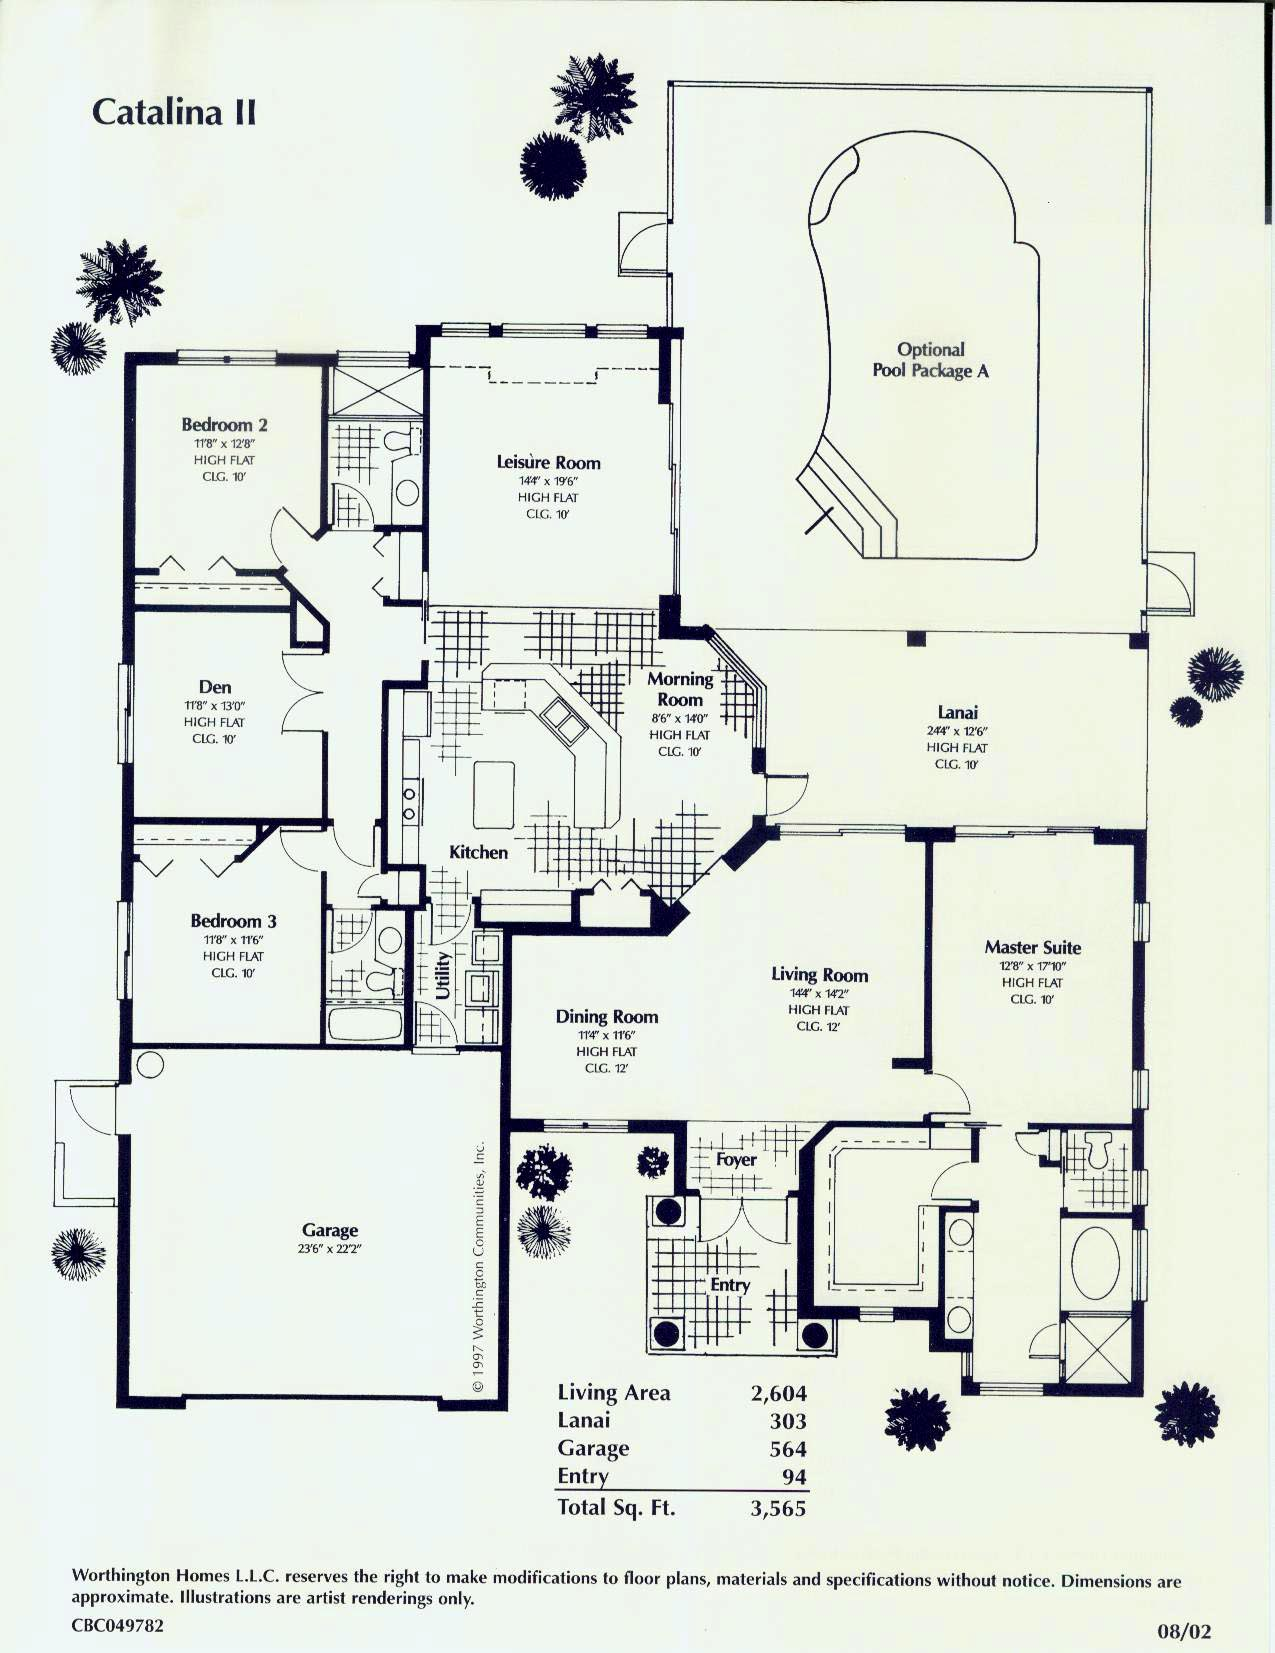 Southwest florida old florida style custom homes Florida style home plans